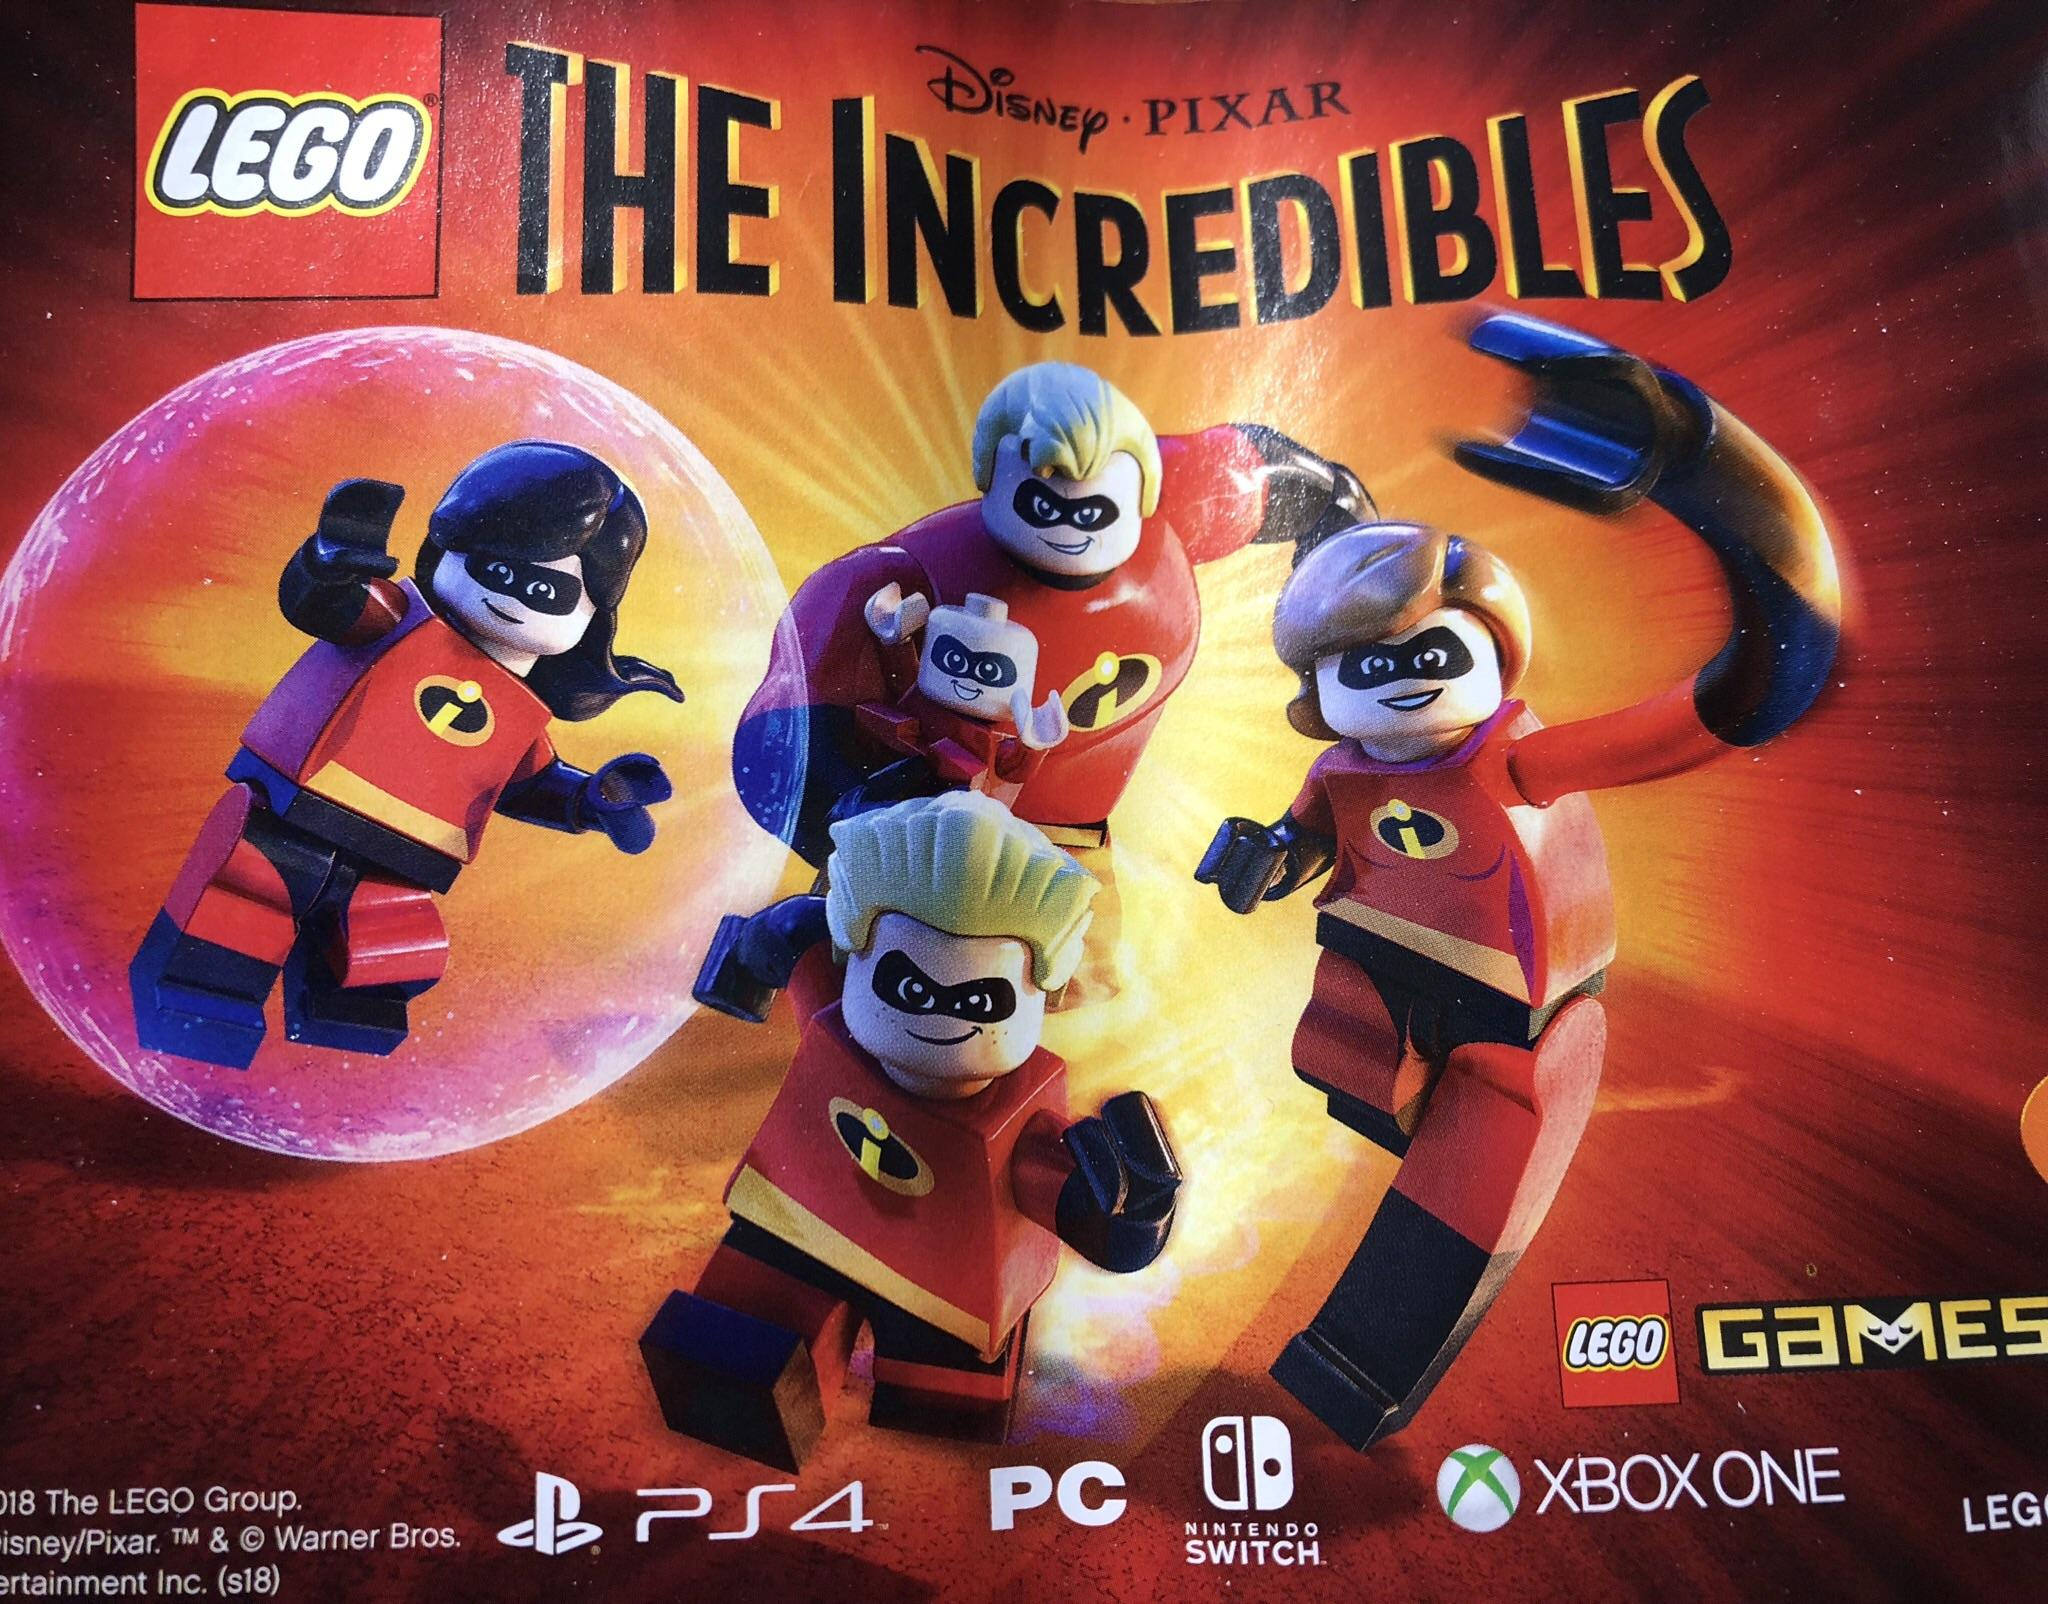 Advertisement Confirms LEGO The Incredibles Game is in Development